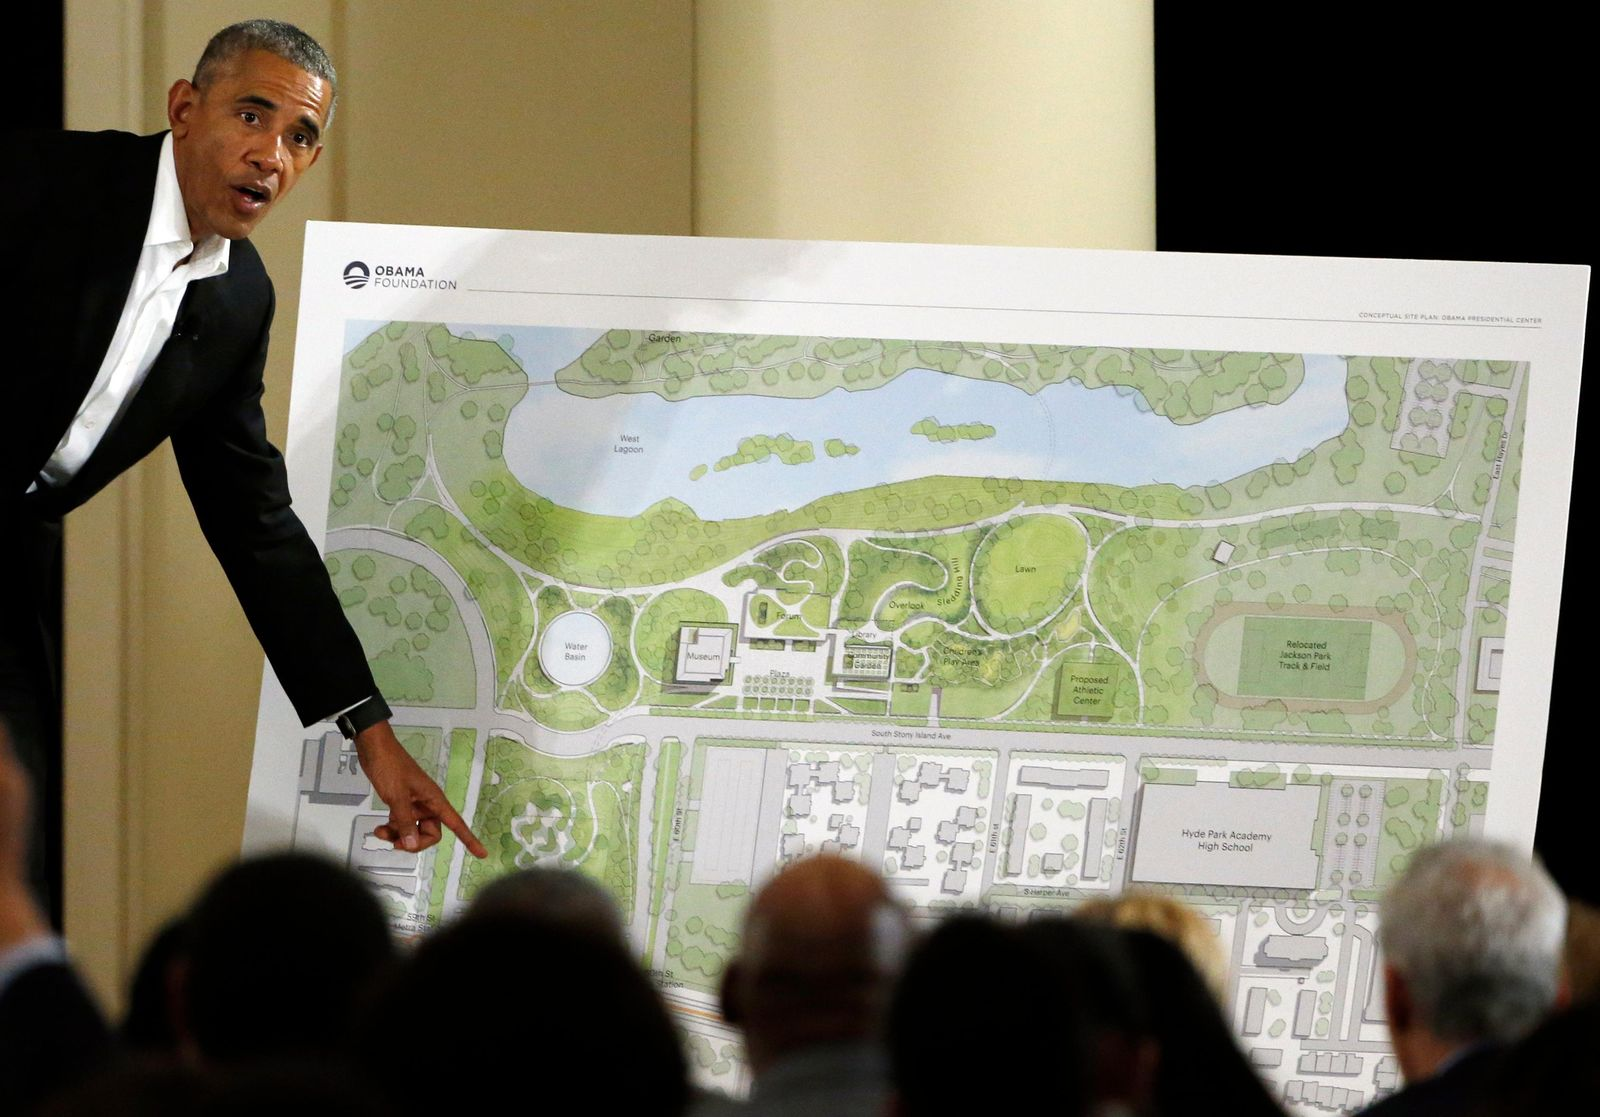 FILE - In this May 3, 2017 file photo, former President Barack Obama speaks at a community event on the Presidential Center at the South Shore Cultural Center in Chicago. (AP Photo/Nam Y. Huh, File)